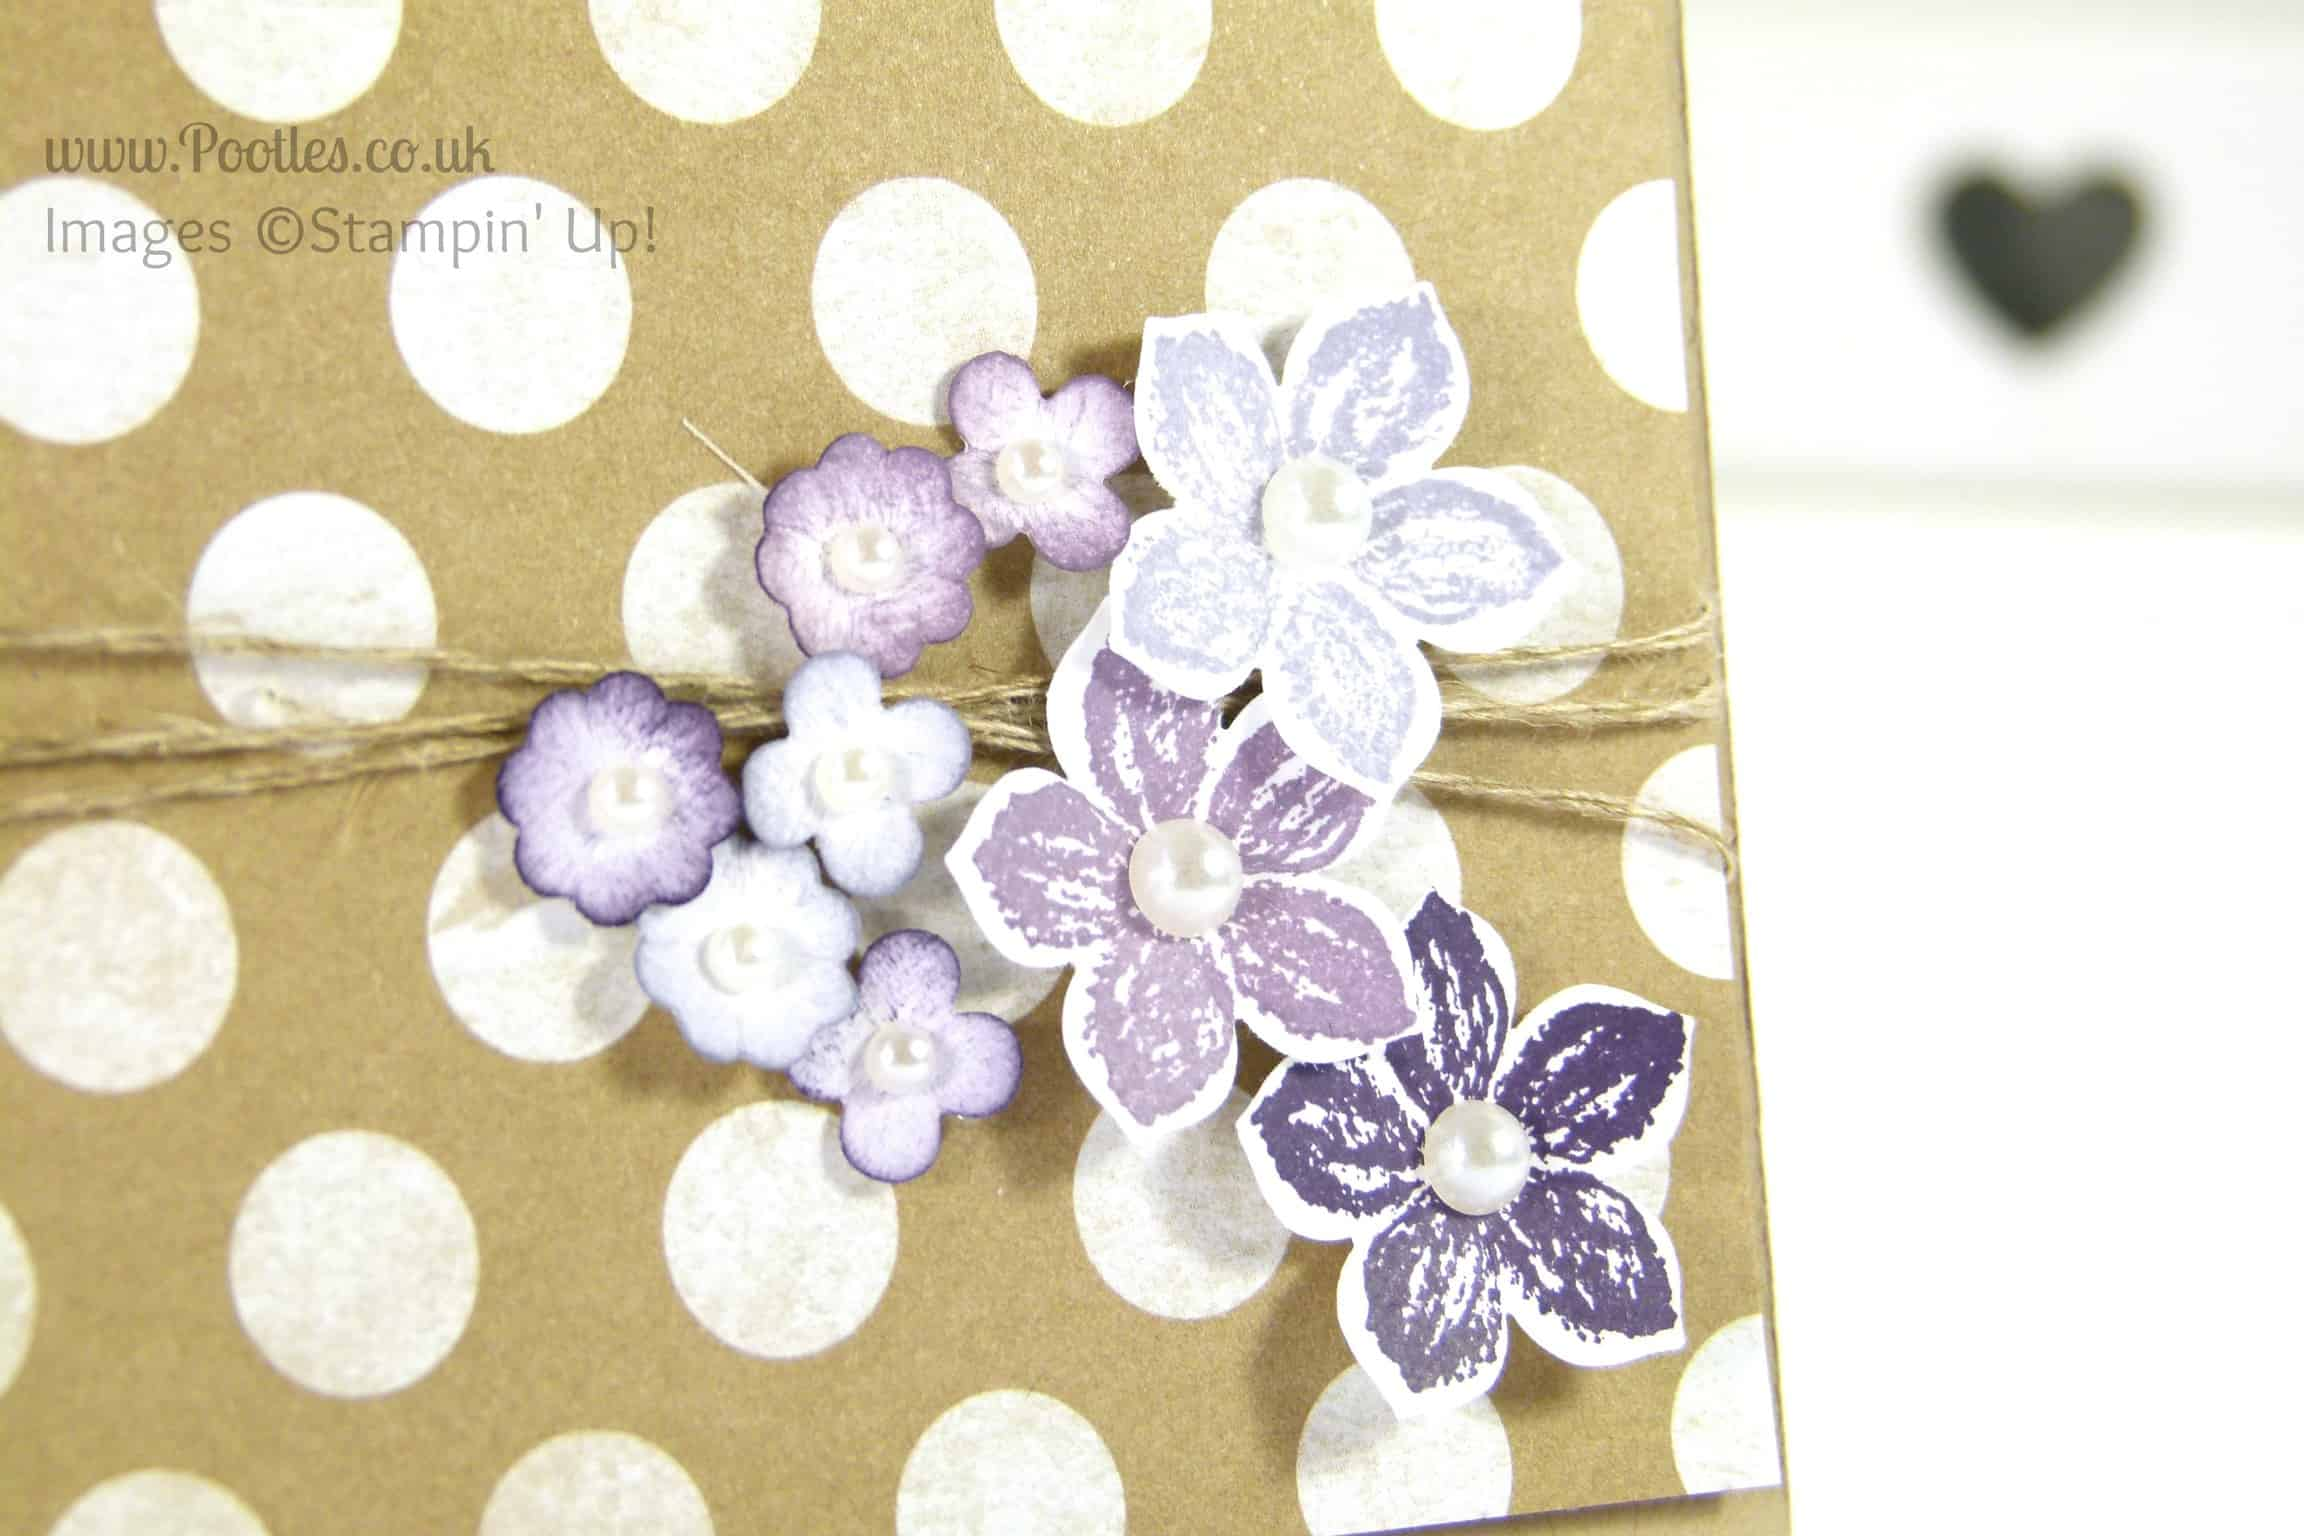 Stampin' Up! UK Demonstrator Pootles - Fresh Prints and Flowers Close Up